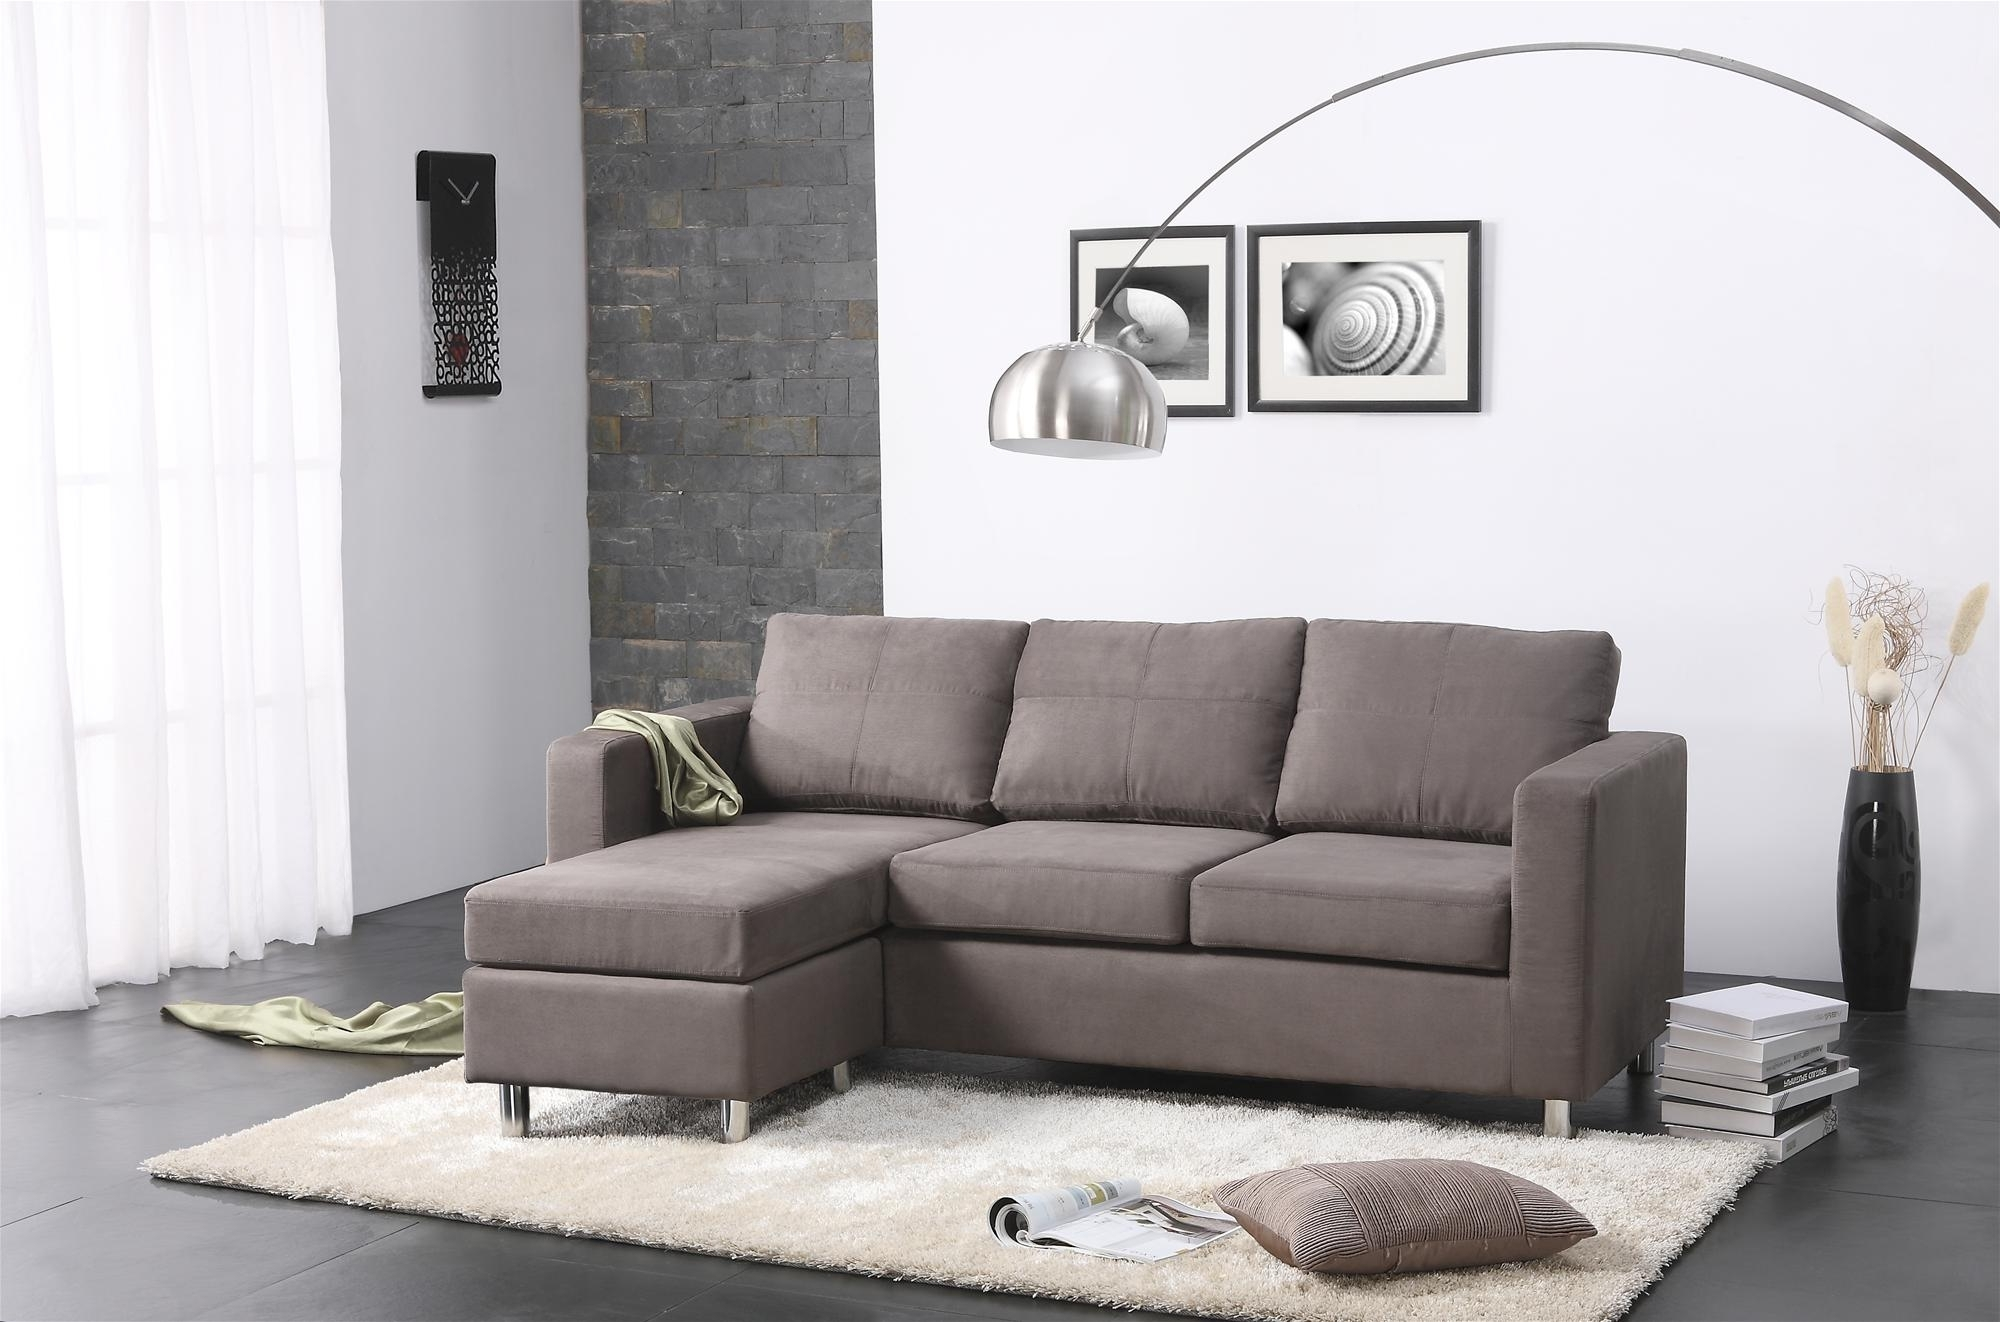 The Best Apartment Sectional Sofas Solving Function And Style With Favorite Apartment Sectional Sofas With Chaise (View 15 of 15)